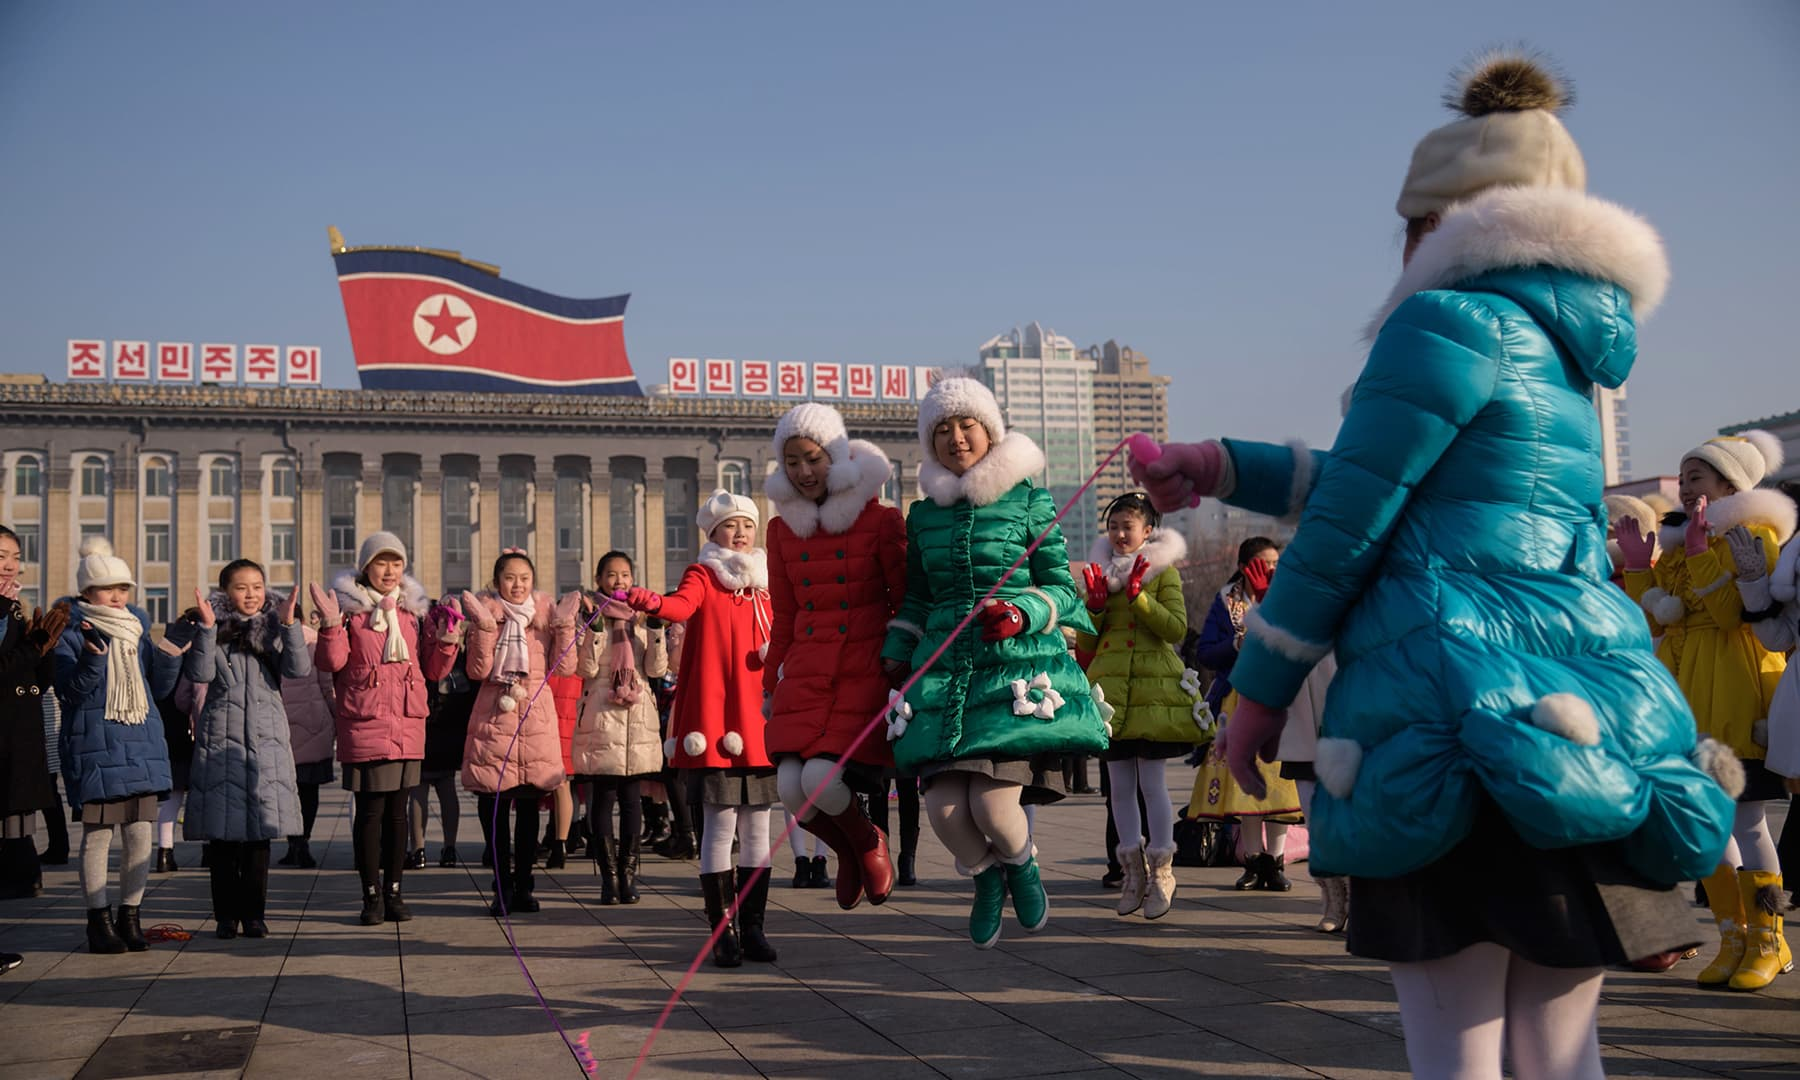 Children play with a skipping rope on Kim Il Sung Square as part of festivities on the first day of the Lunar New Year in Pyongyang, North Korea on January 25, 2020. — AFP